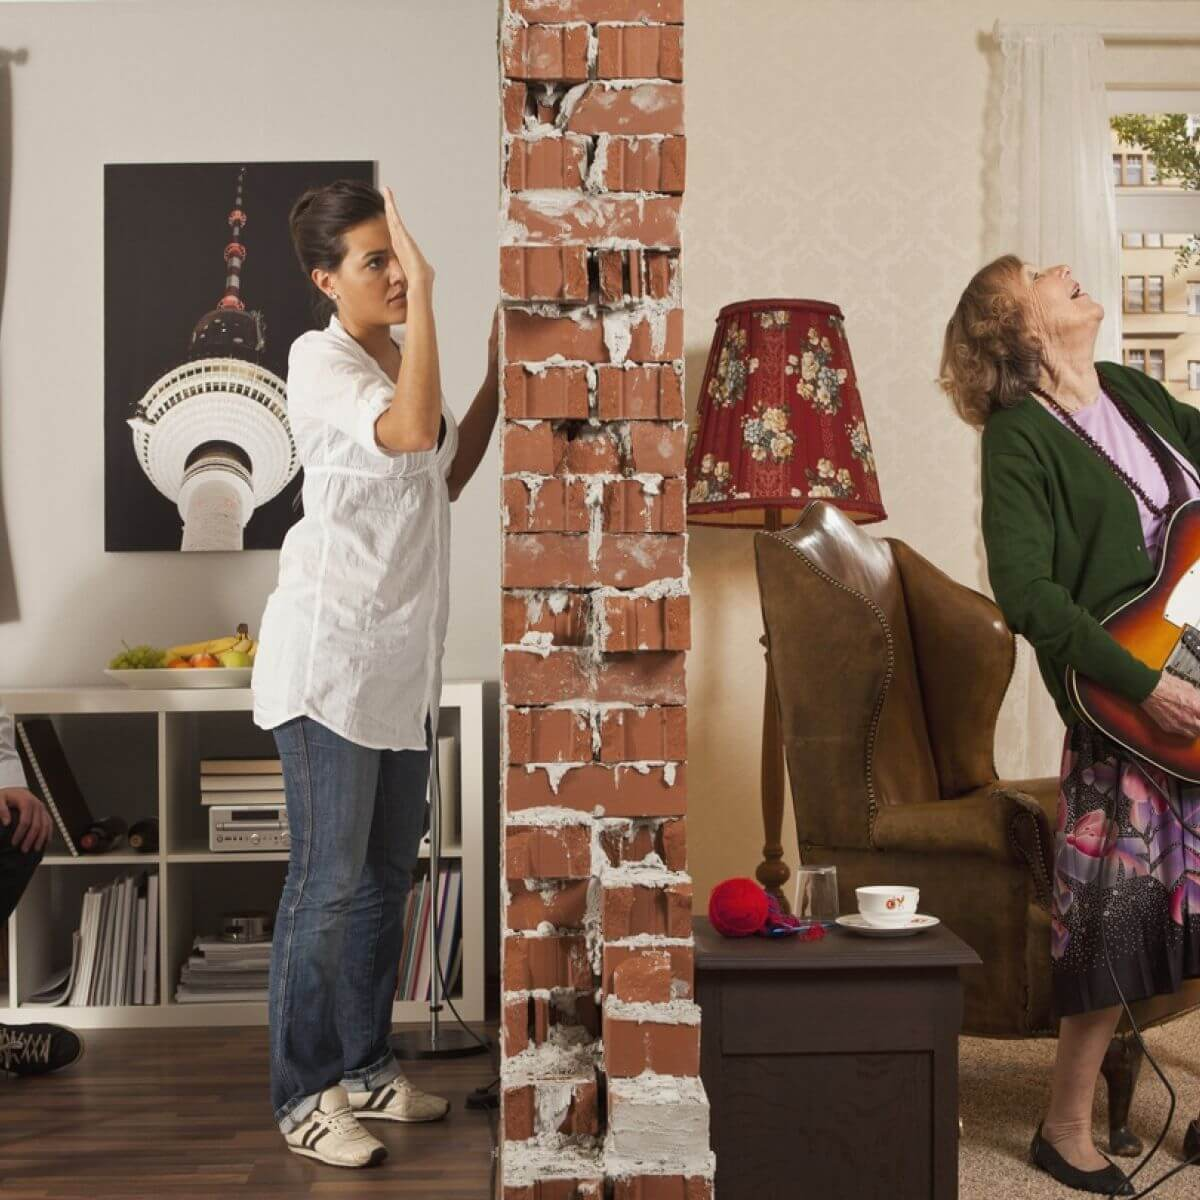 One tenant angry at another for making too much noise (grandma playing guitar)